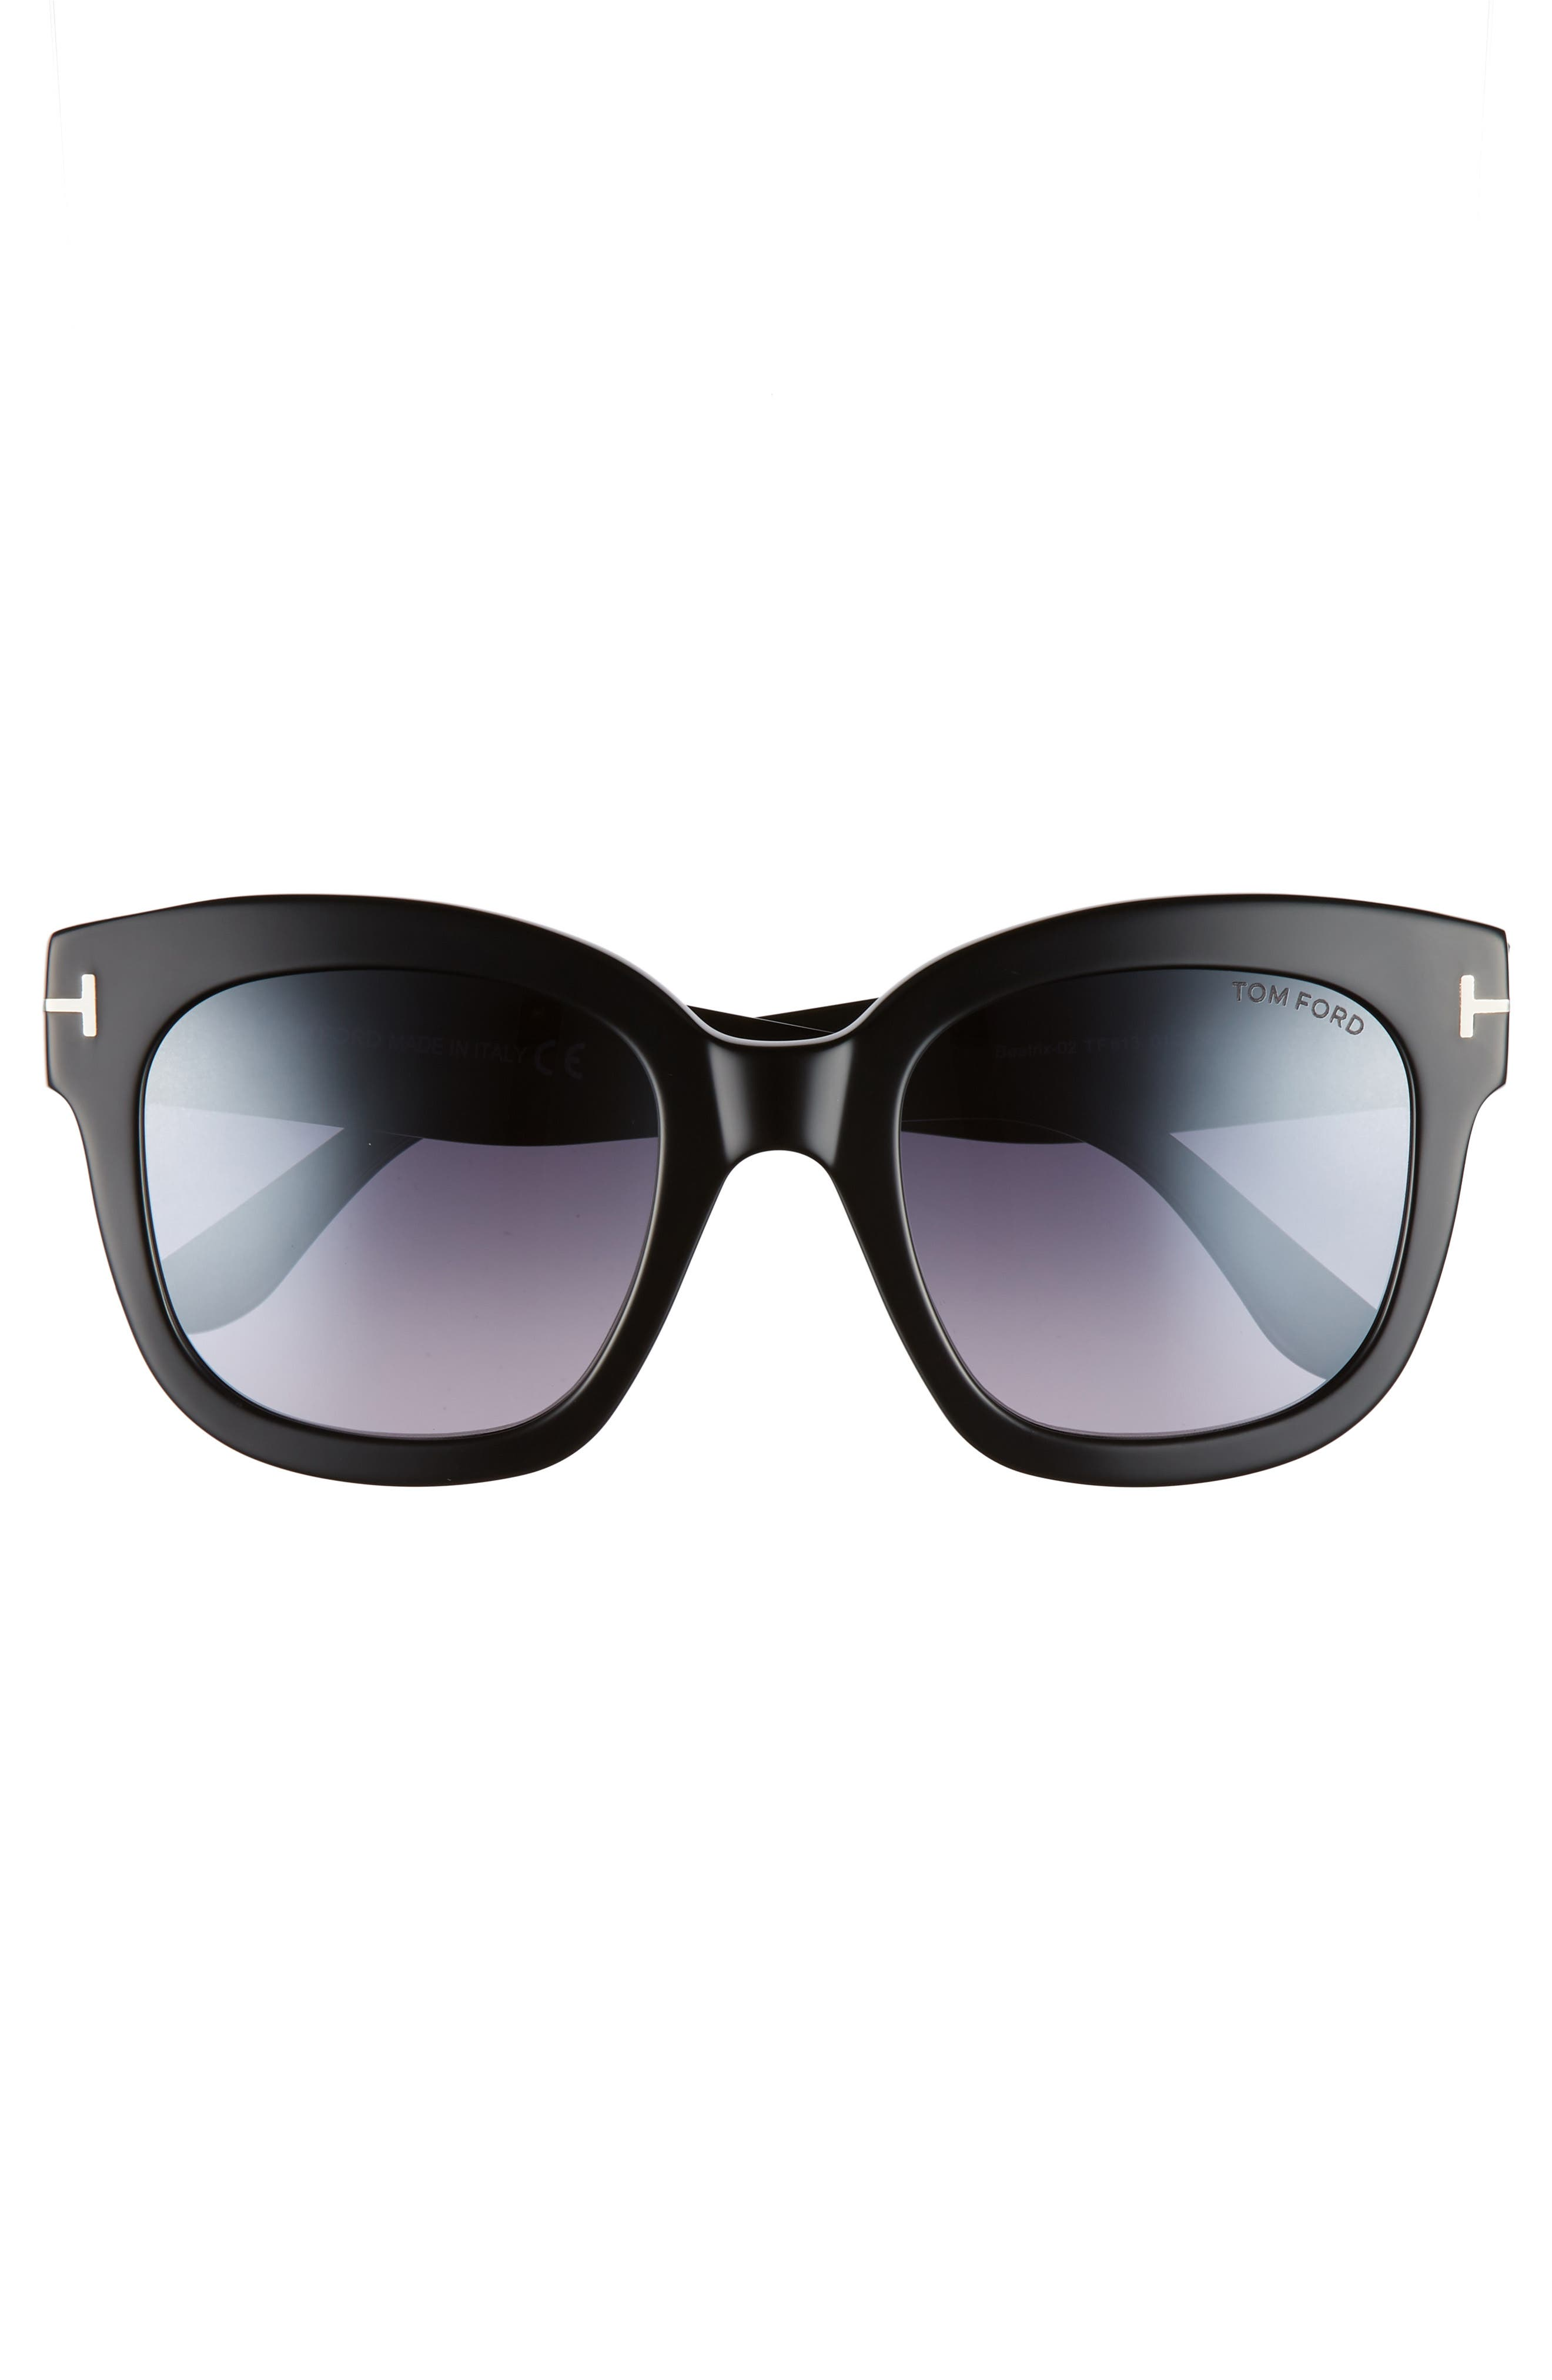 Beatrix 52mm Sunglasses,                             Alternate thumbnail 3, color,                             SHINY BLACK/ SMOKE MIRROR